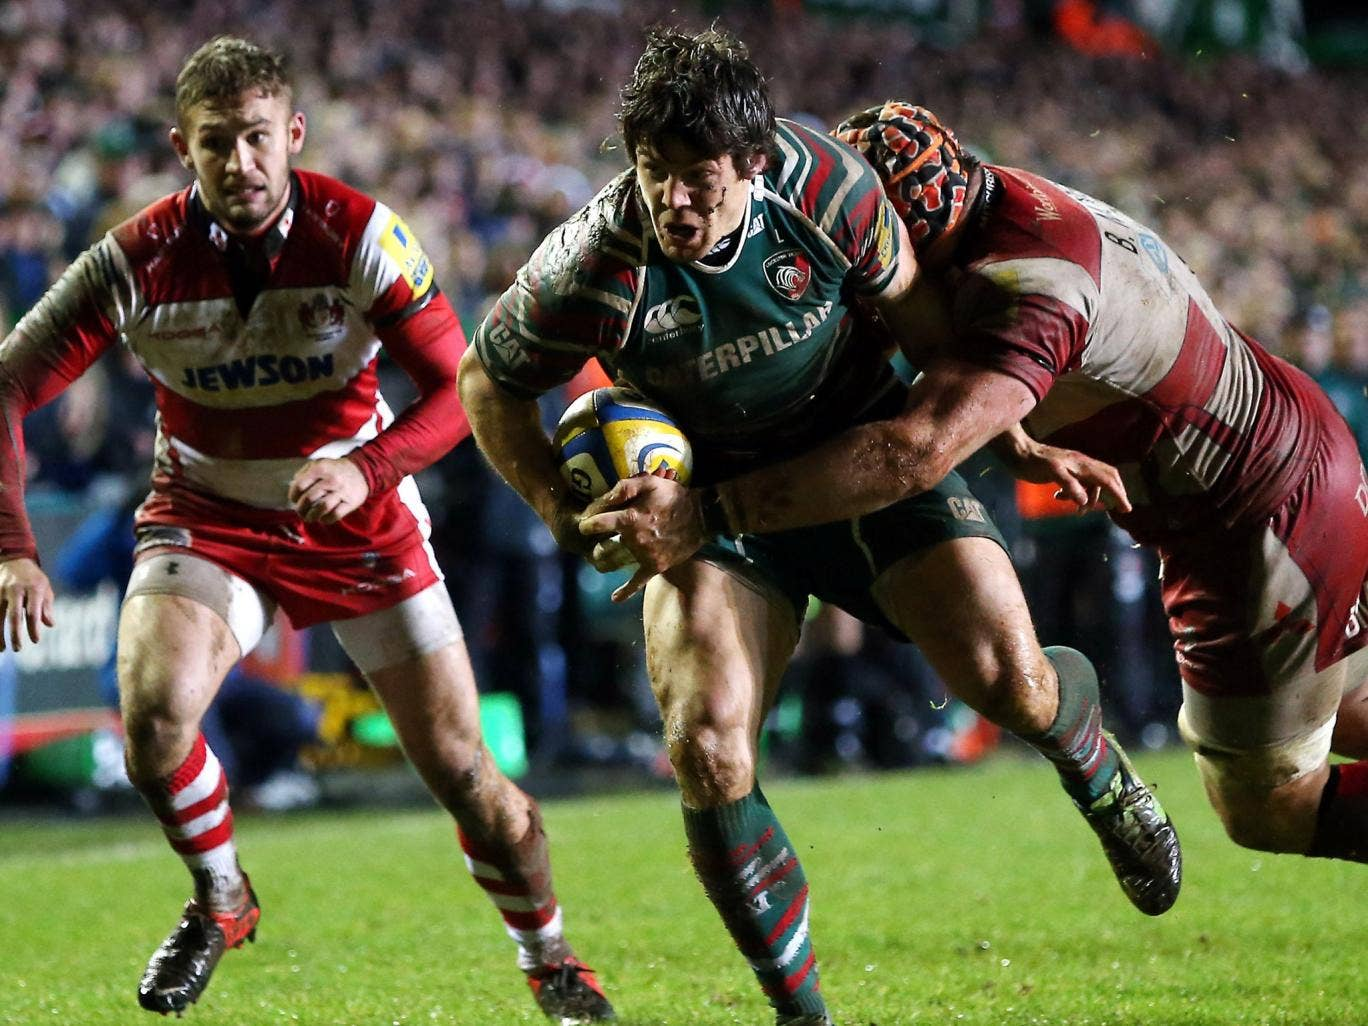 Strong-armed: Leicester's Anthony Allen is tackled by Ben Morgan